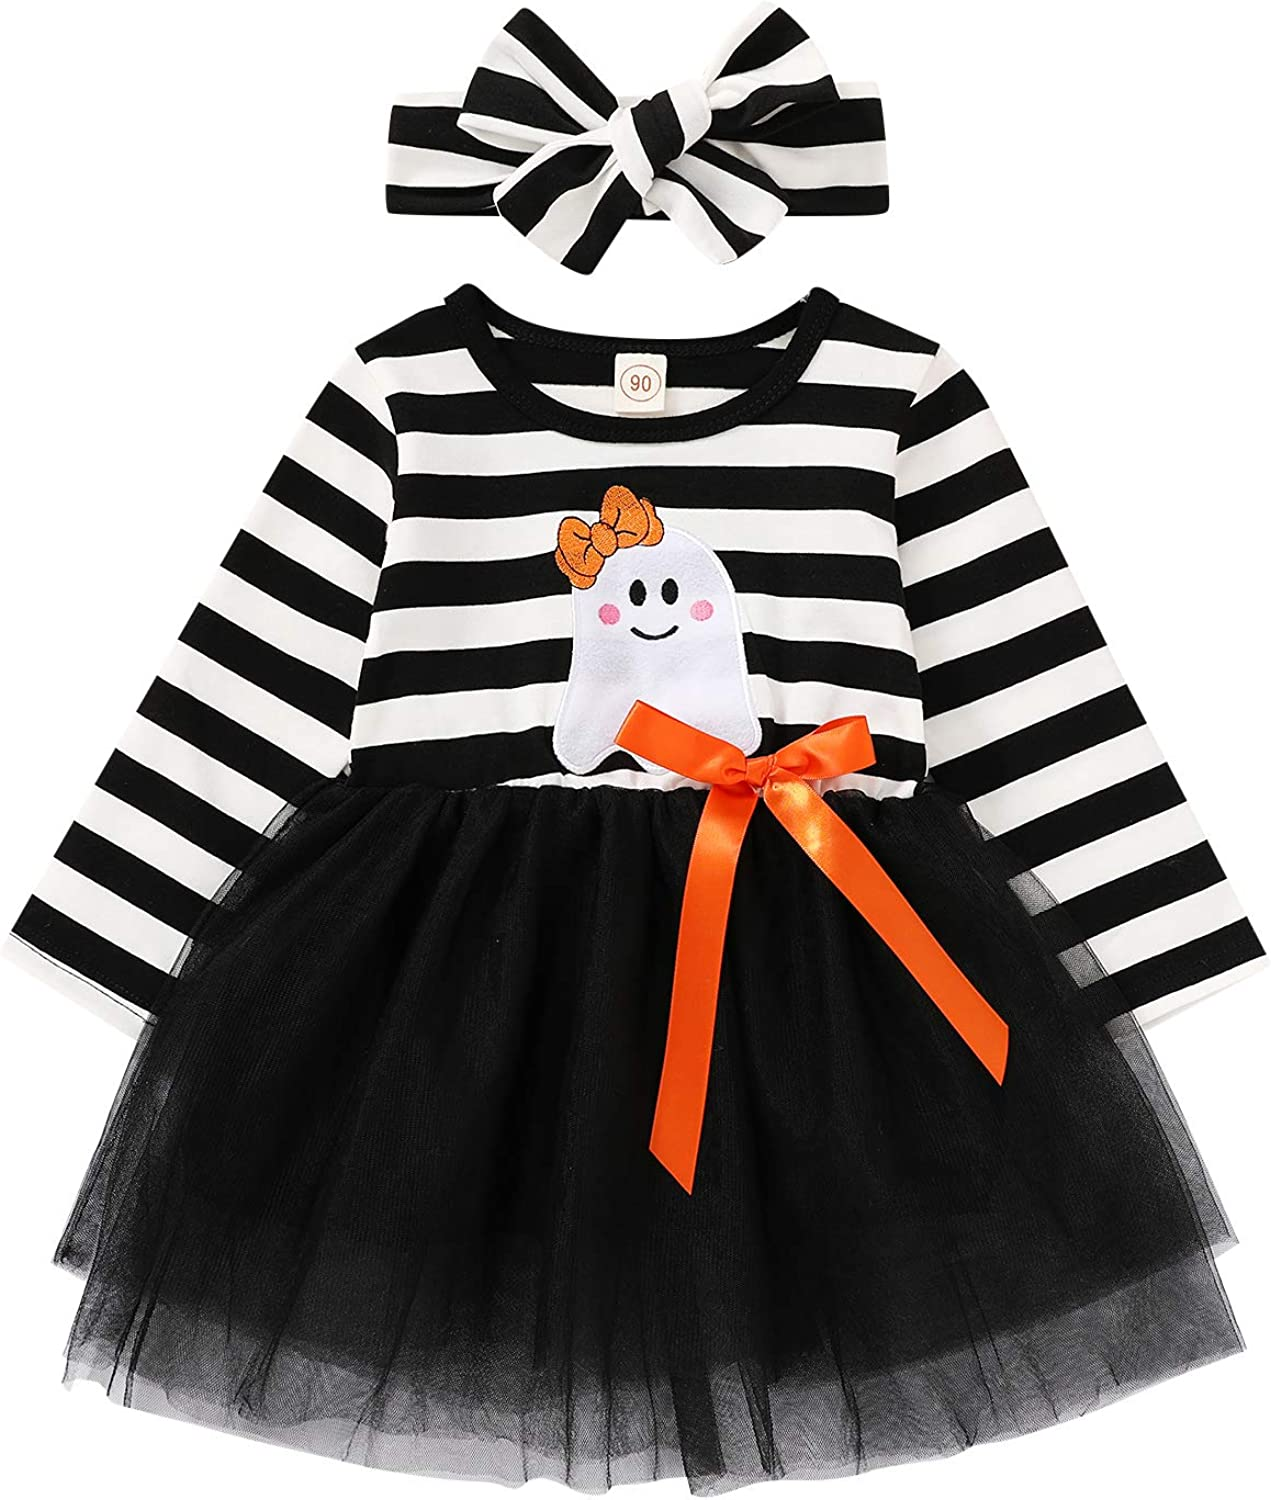 GRNSHTS Toddler Girls Thanksgiving Outfits Baby Little Turkey Striped Long Sleeve Dress Tutu Skirt Playwear with Headband